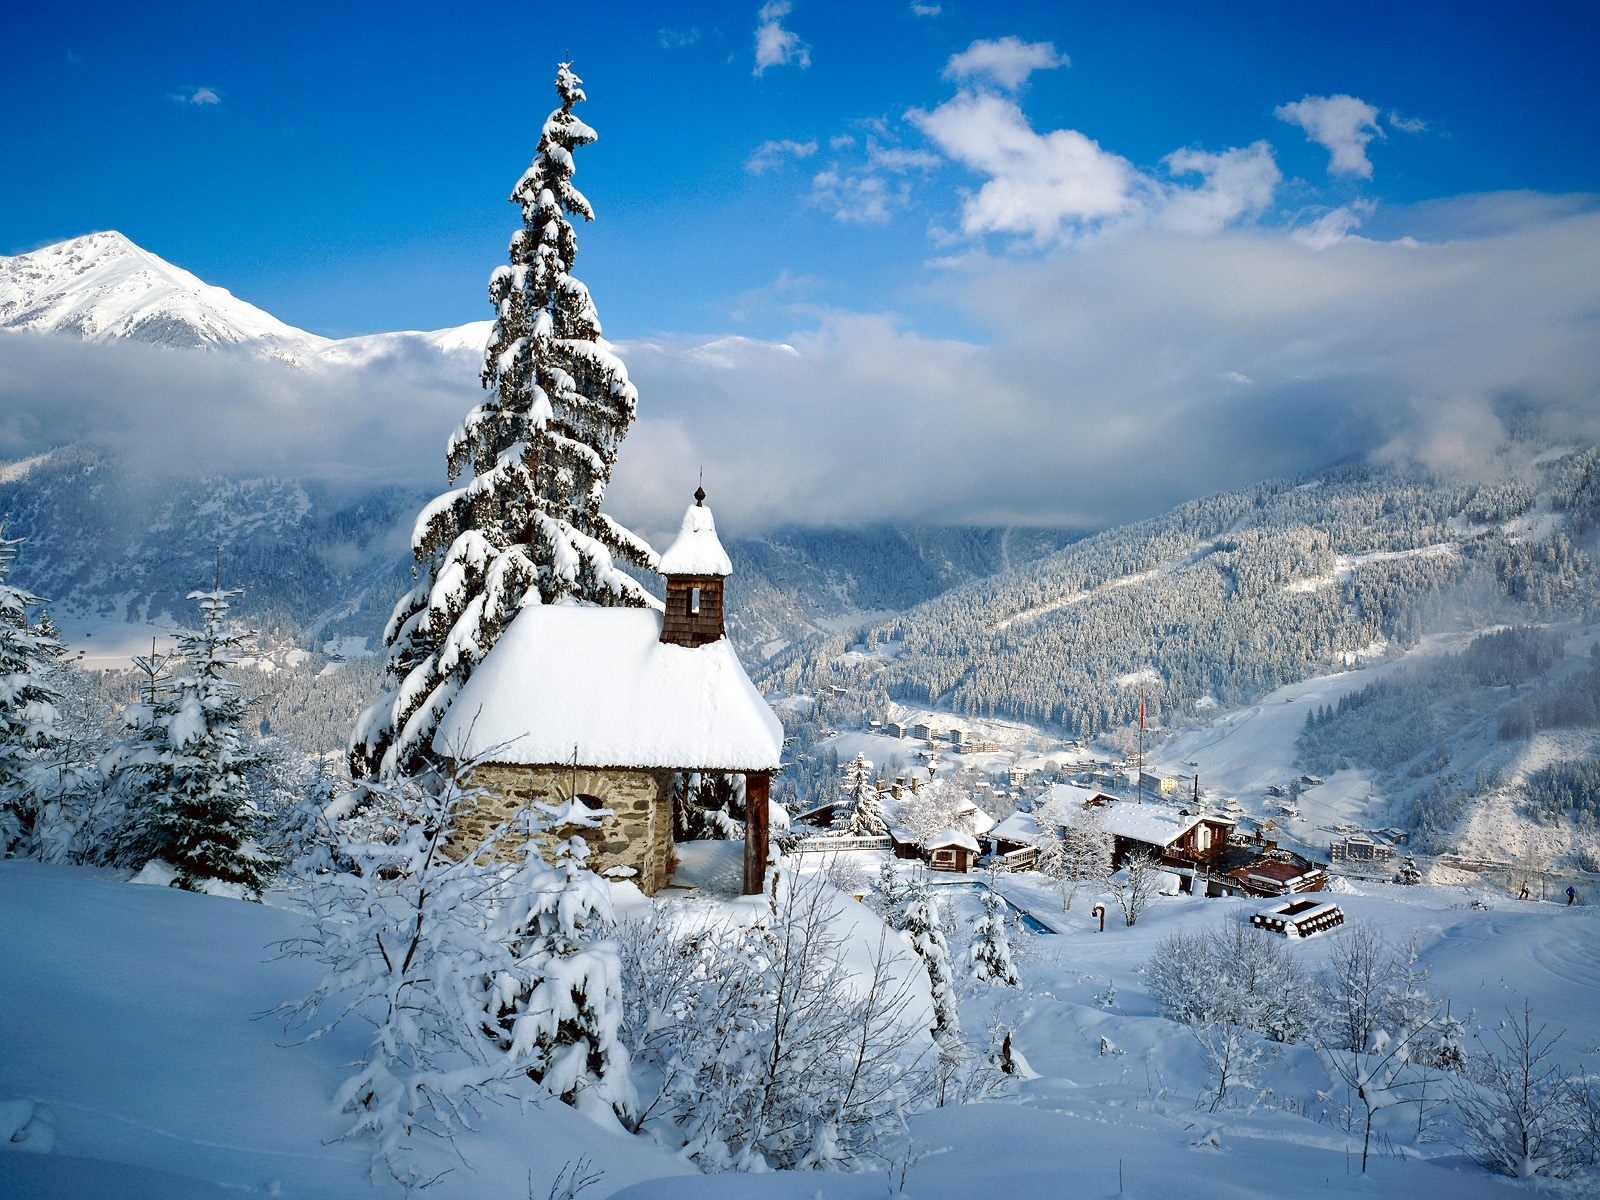 Winter Scene Poster Wallpaper Art Zeromin0 1600x1200